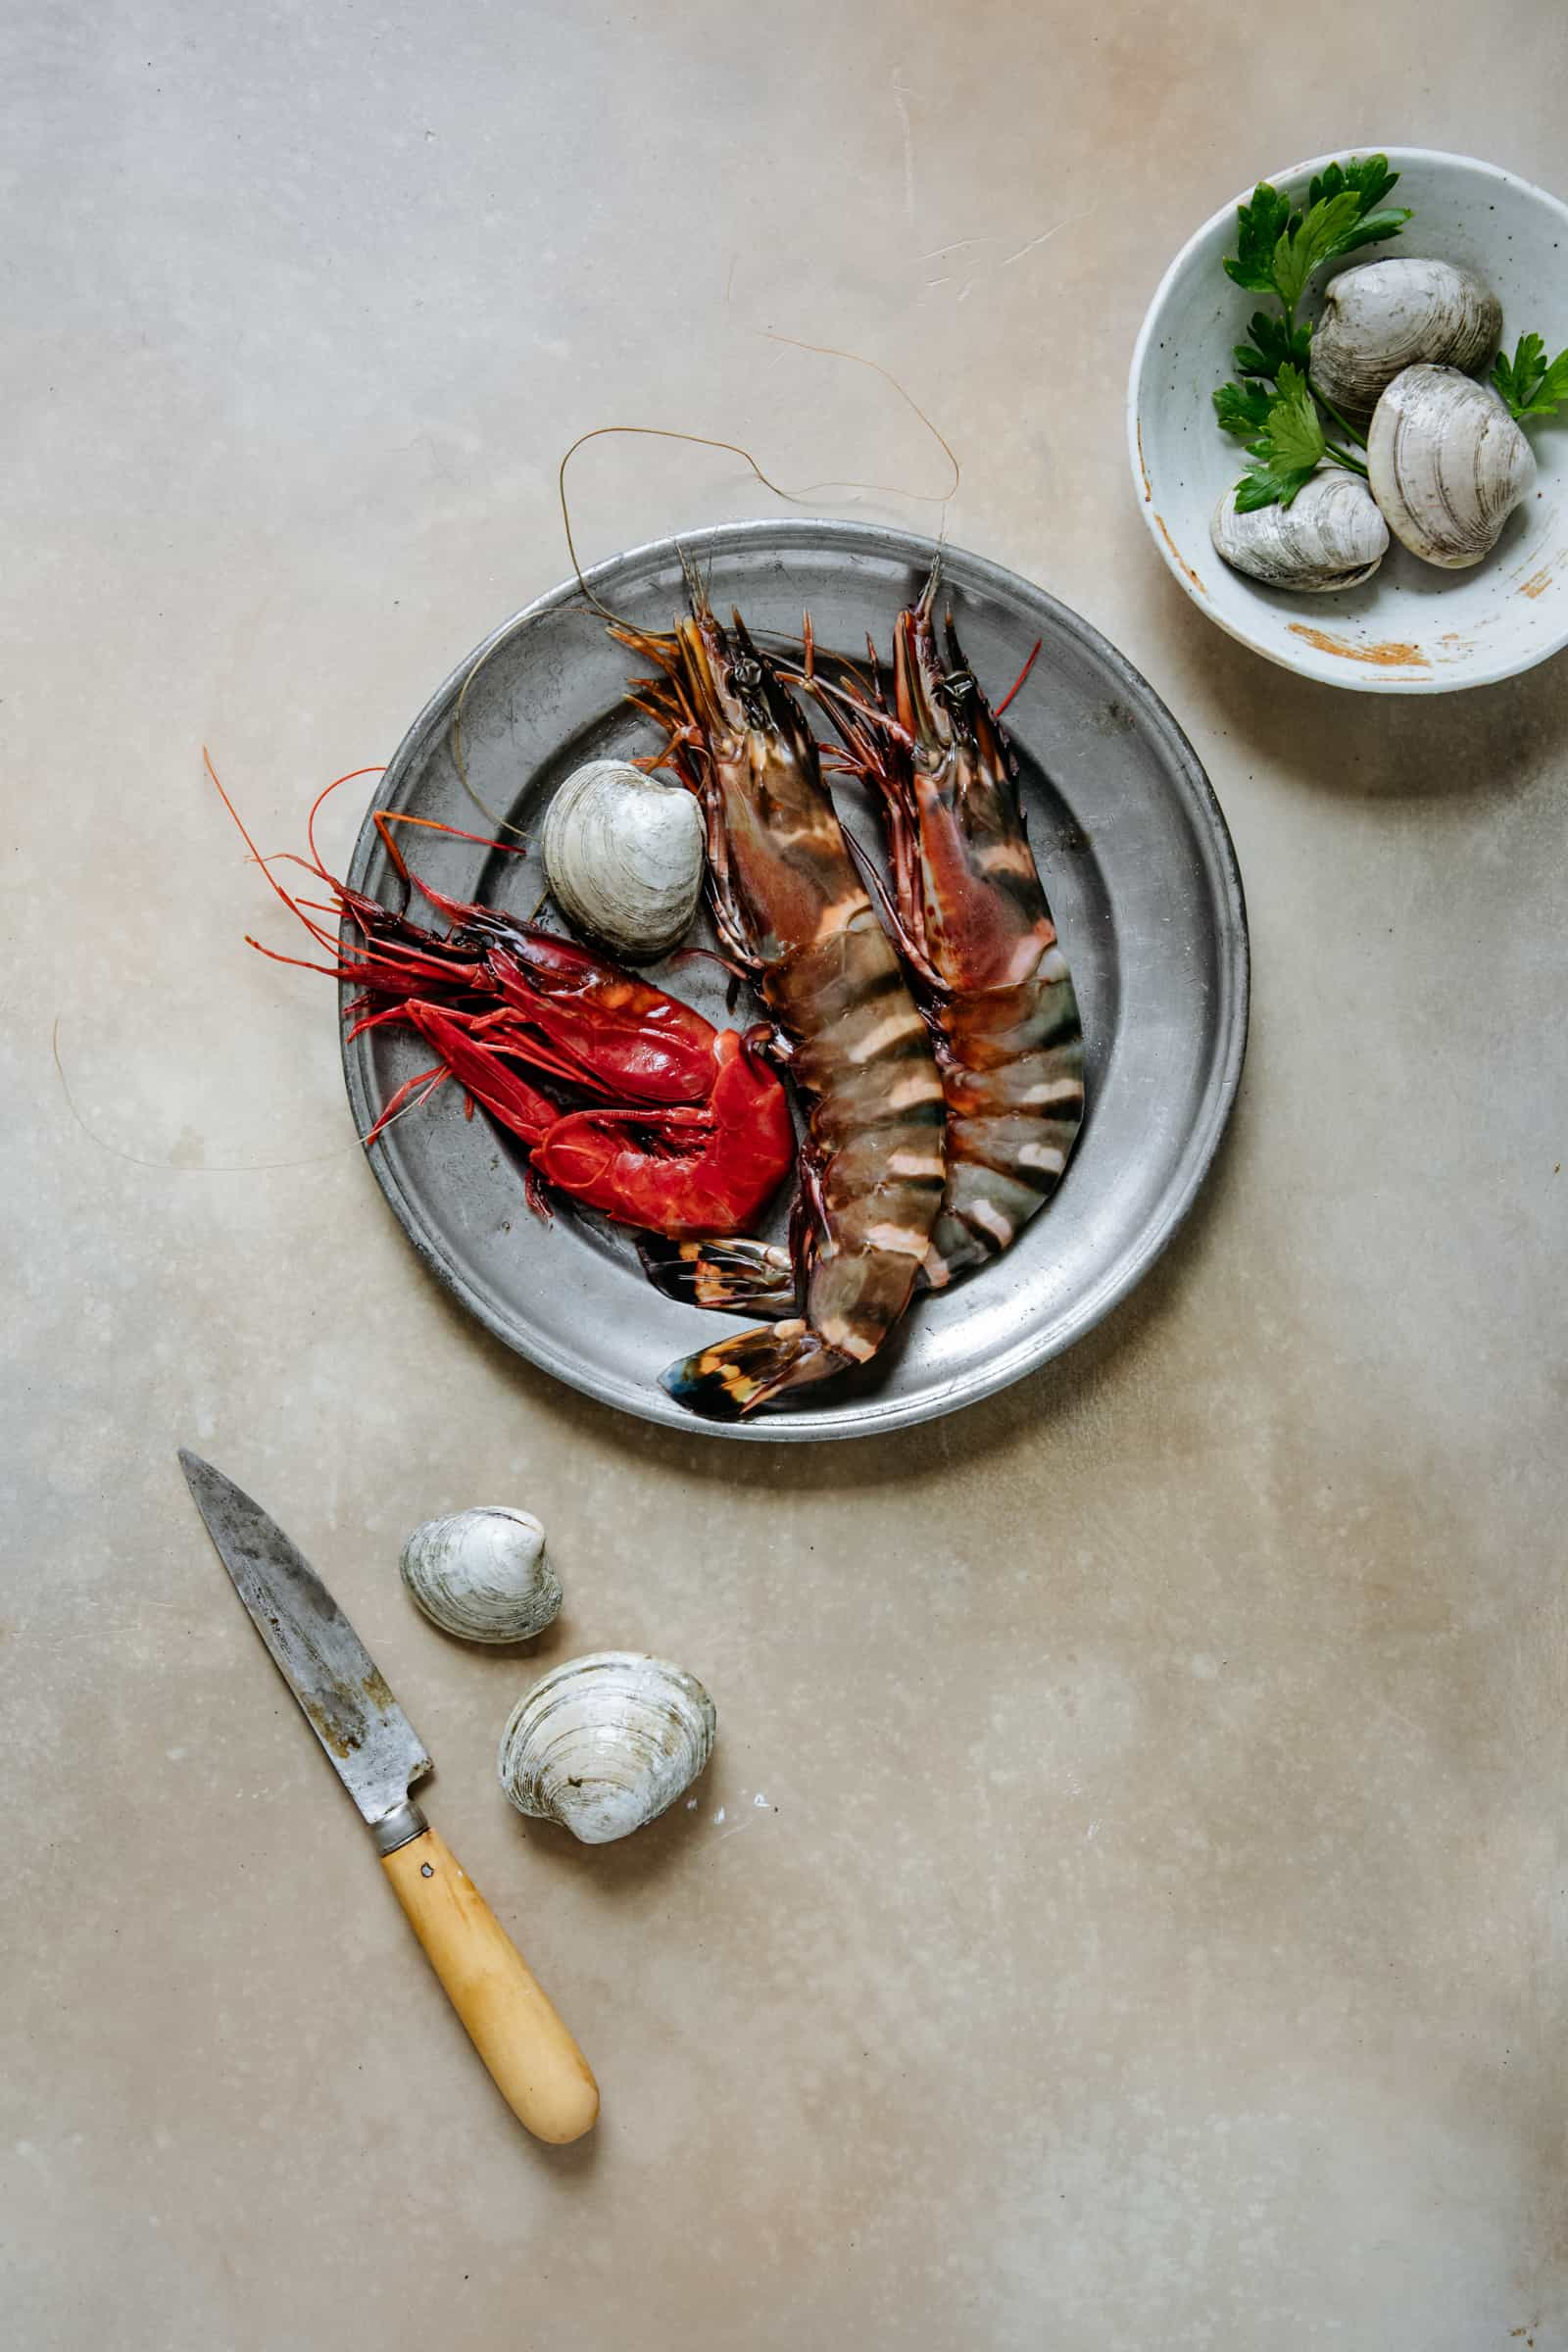 Cast Iron Roasted Colossal Prawns with Clams and Gremolata